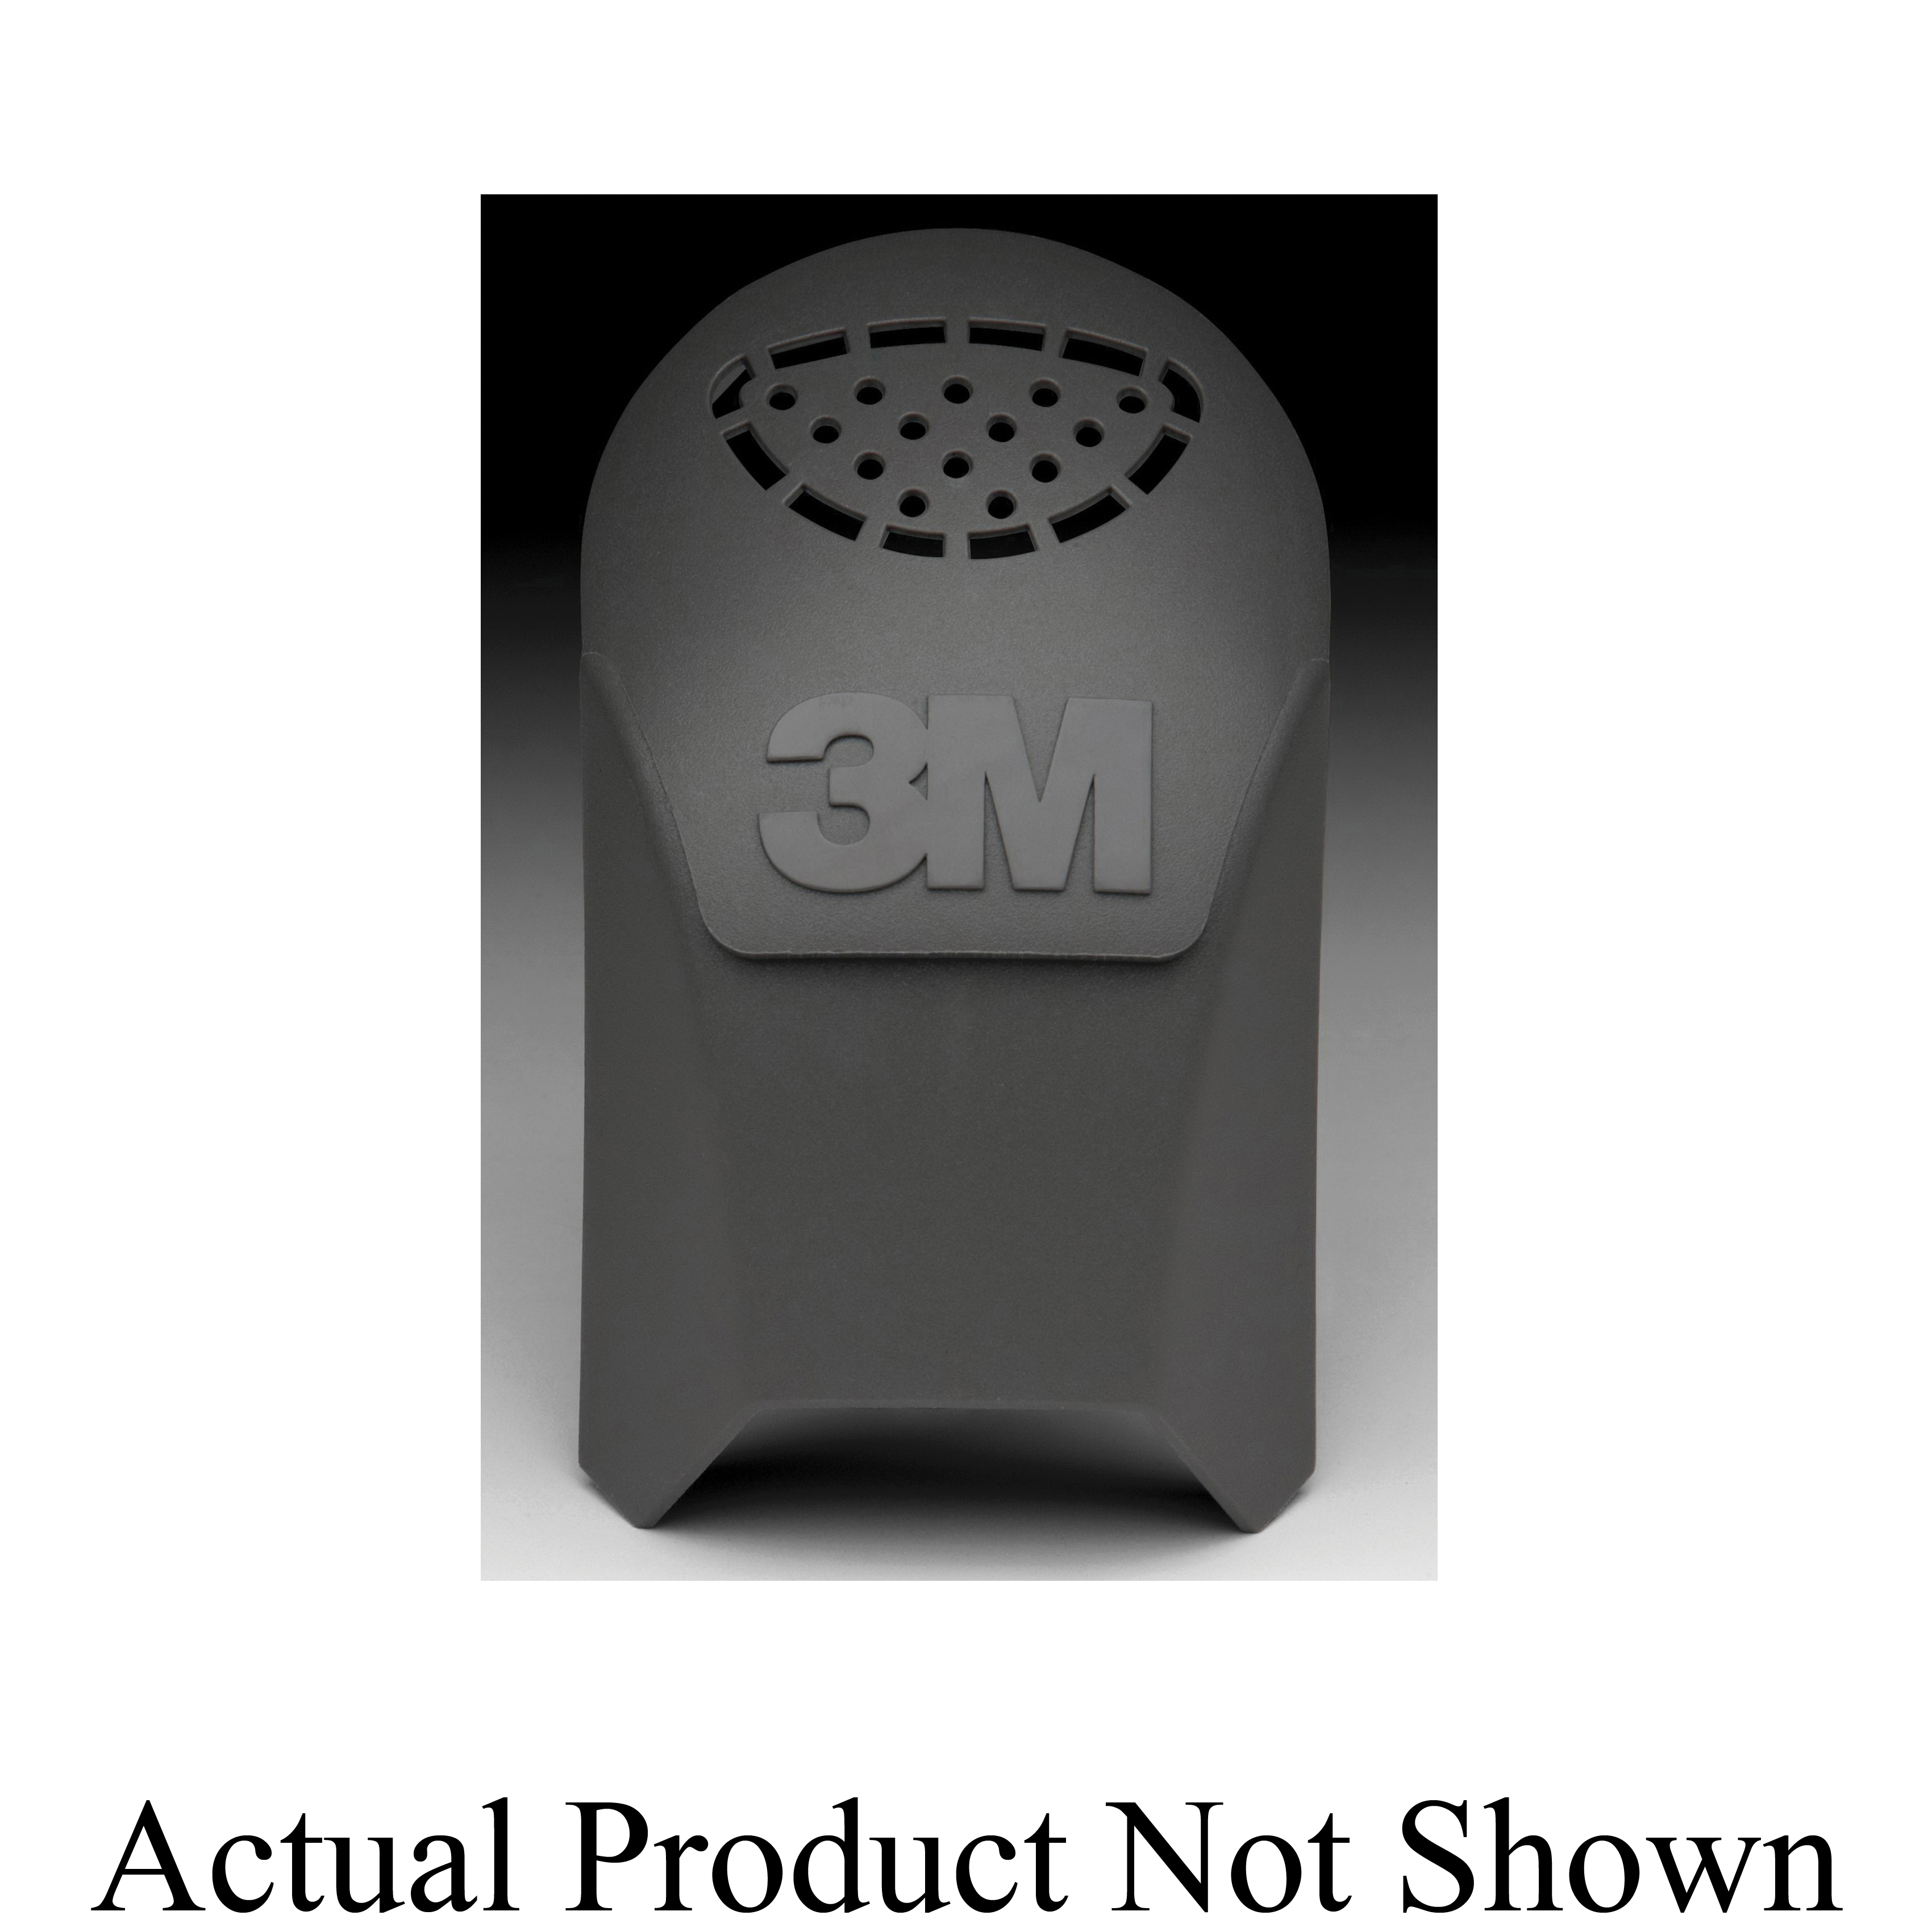 3M™ 051135-89481 Exhalation Valve Cover, For Use With FF-401, 402 and 403 Ultimate FX Full Facepiece Reusable Respirators, Black